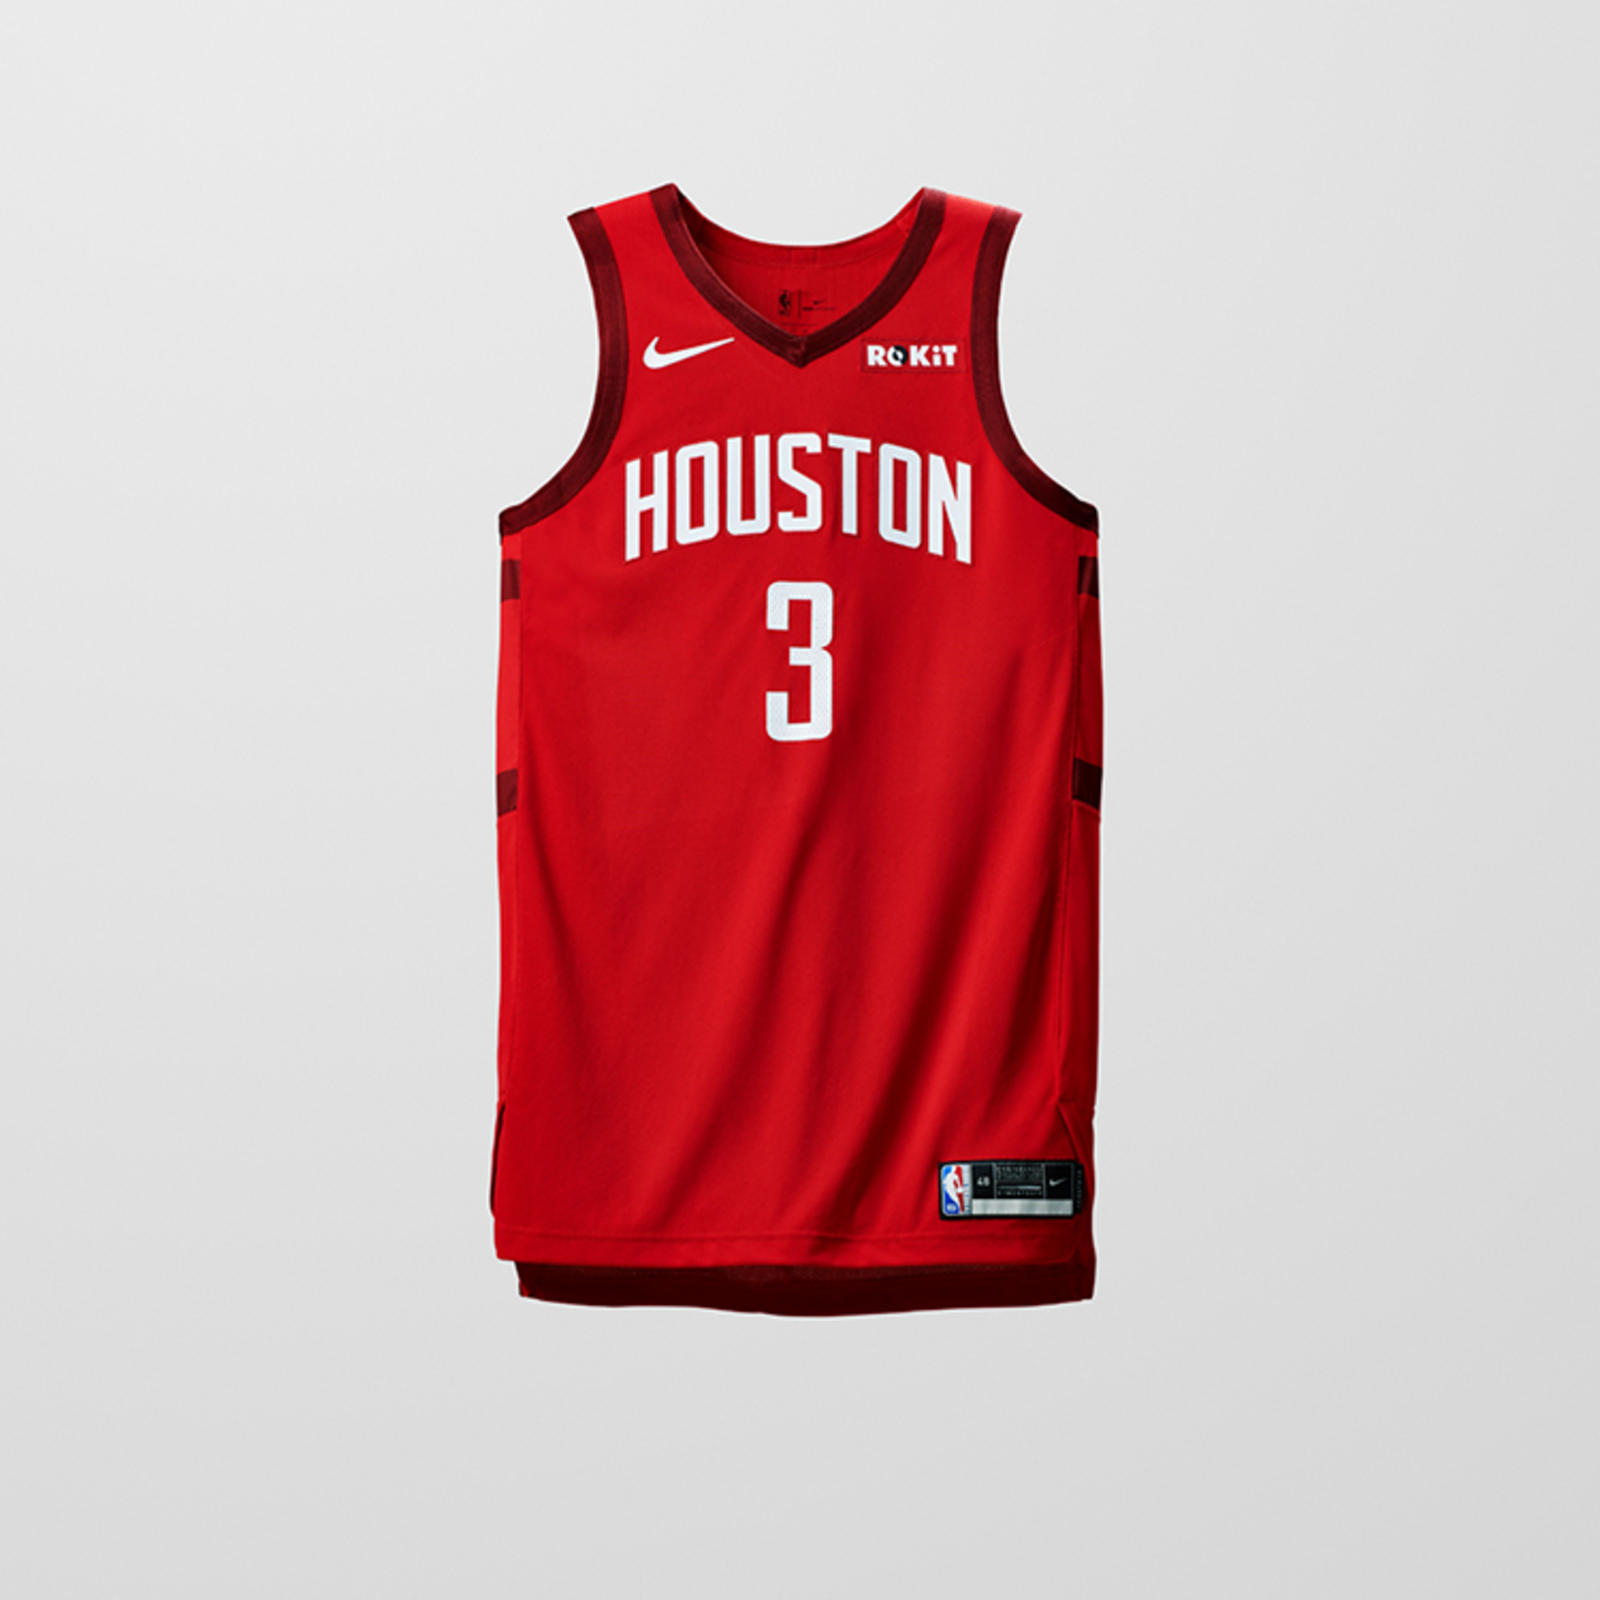 381be14382c Introducing the Nike x NBA EARNED Edition Uniforms 1. HOUSTON ROCKETS